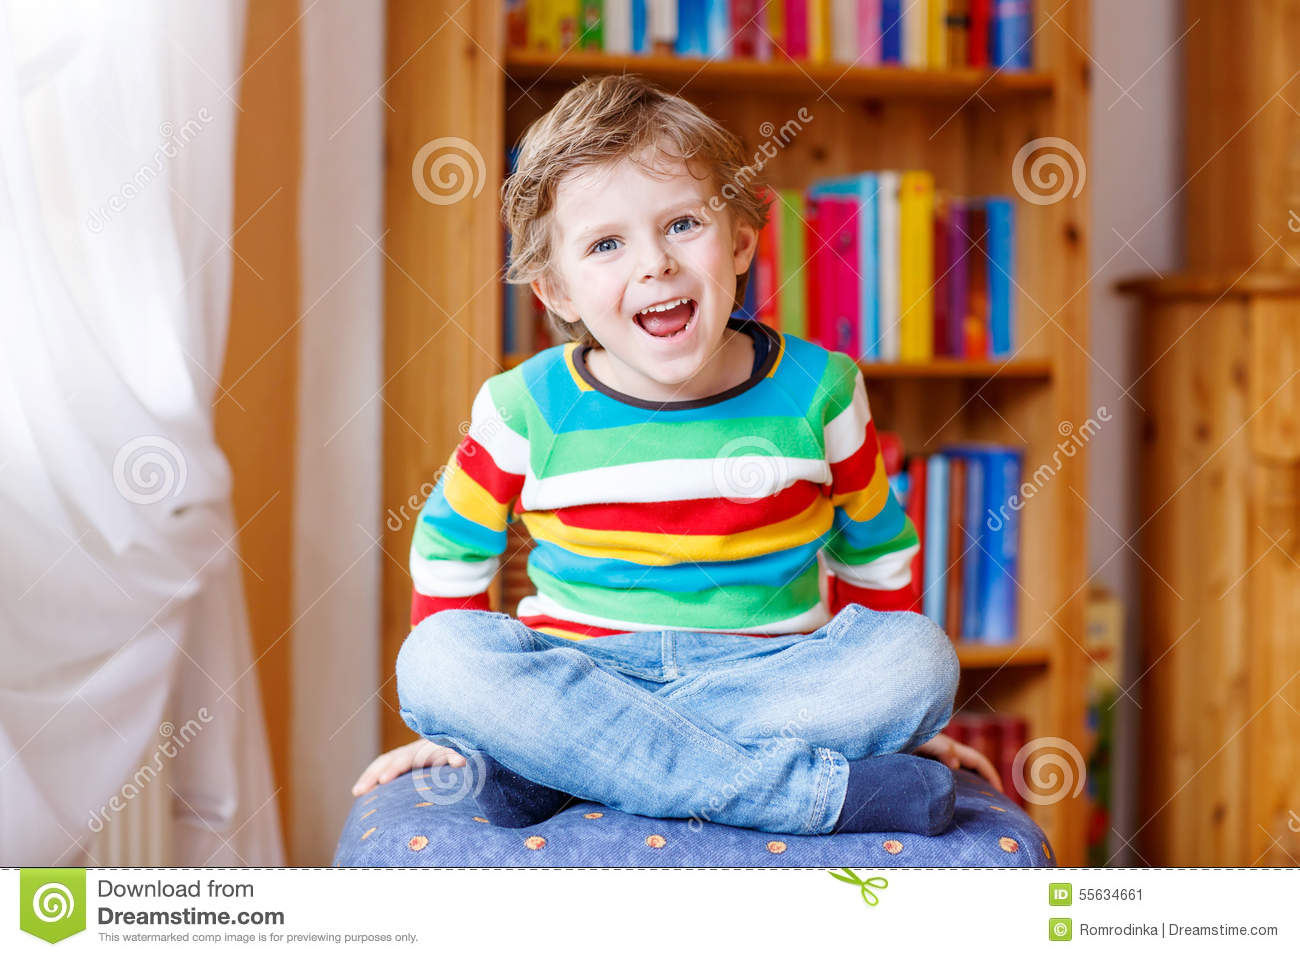 Little Blond Kid Boy Having Fun And Smiling Indoors Royalty Free Stock Photo